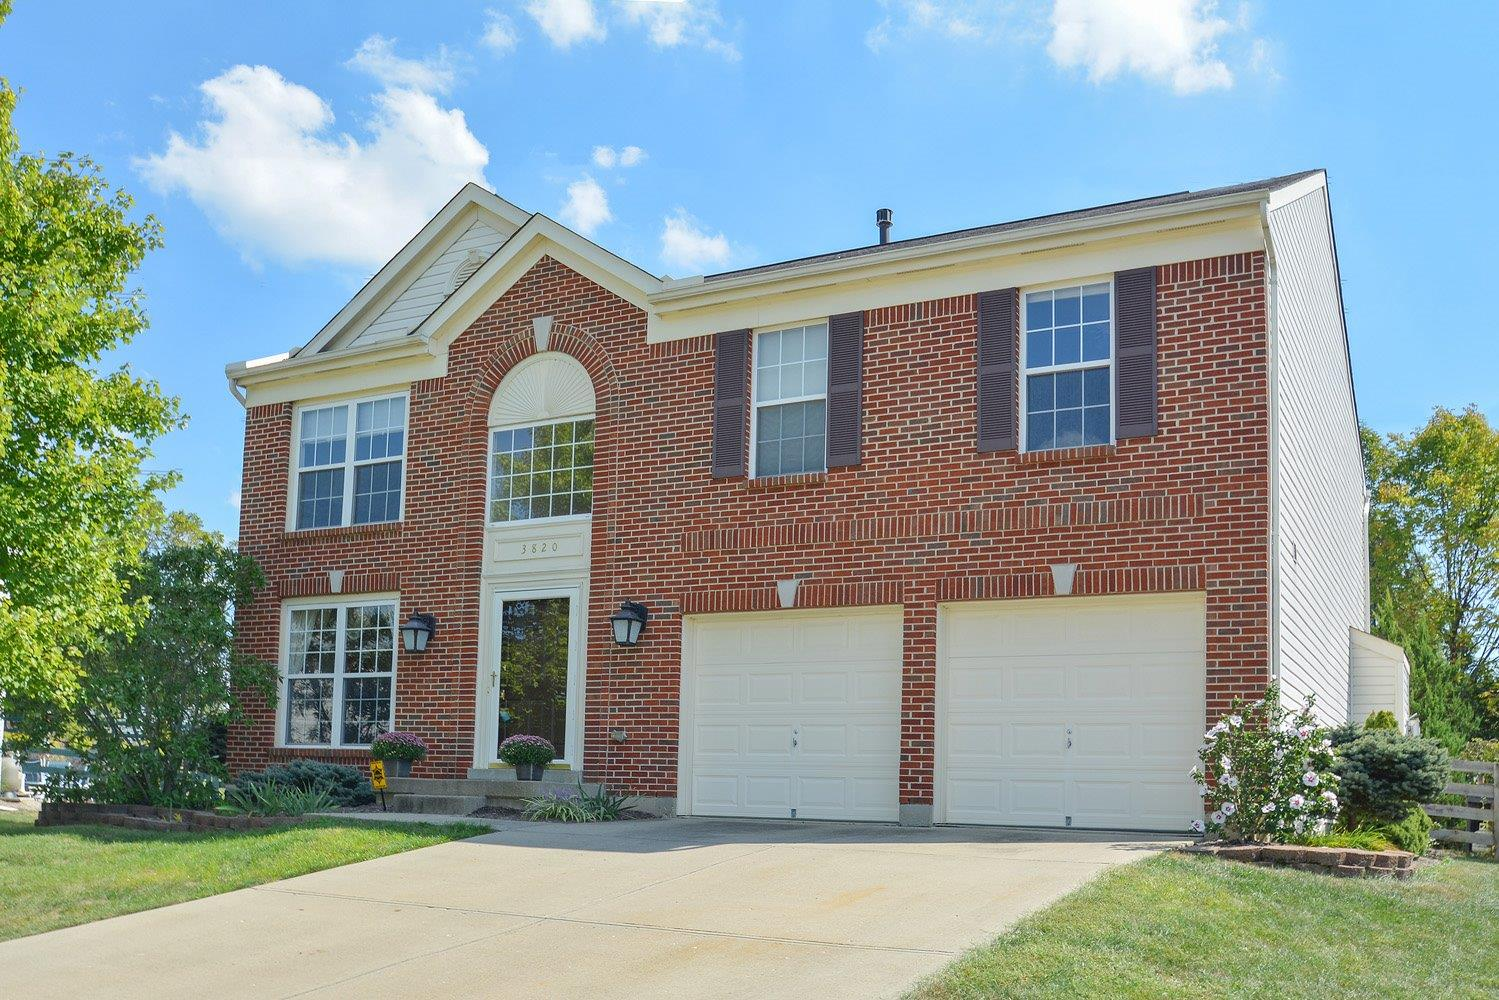 3820 Golden Meadow Ct Batavia Twp., OH